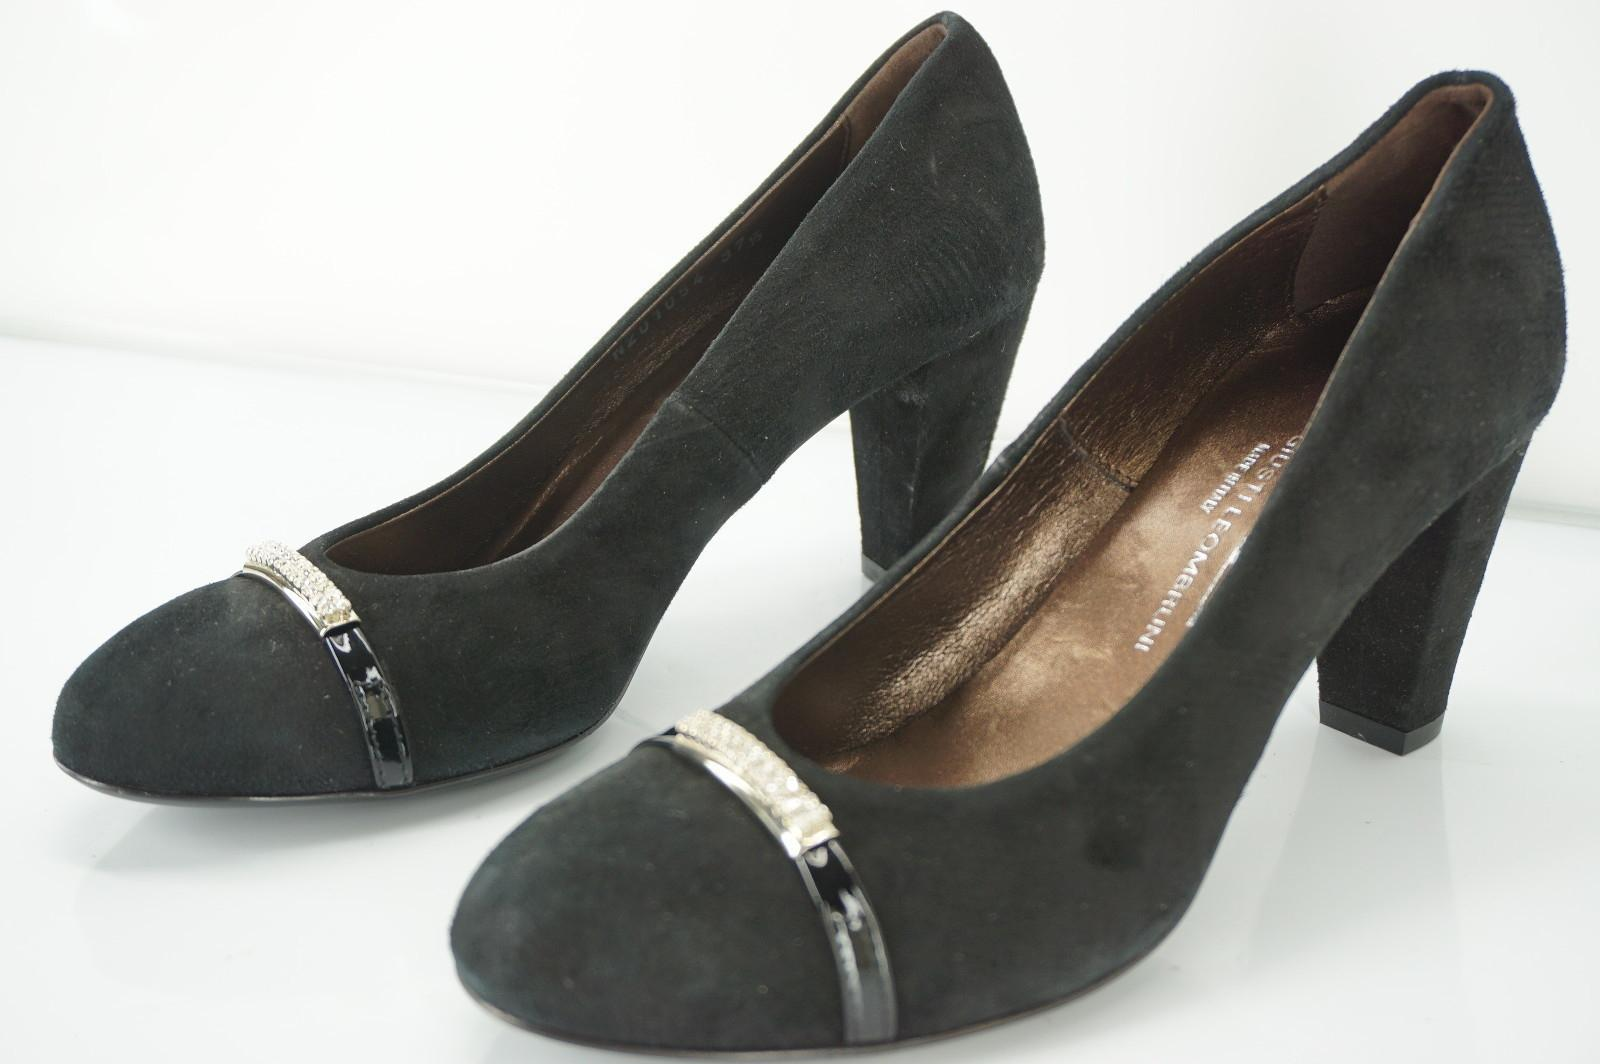 AGL Suede Round-Toe Pumps cheap sale countdown package wiki for sale best cheap price free shipping best place clearance low shipping o0lCnua